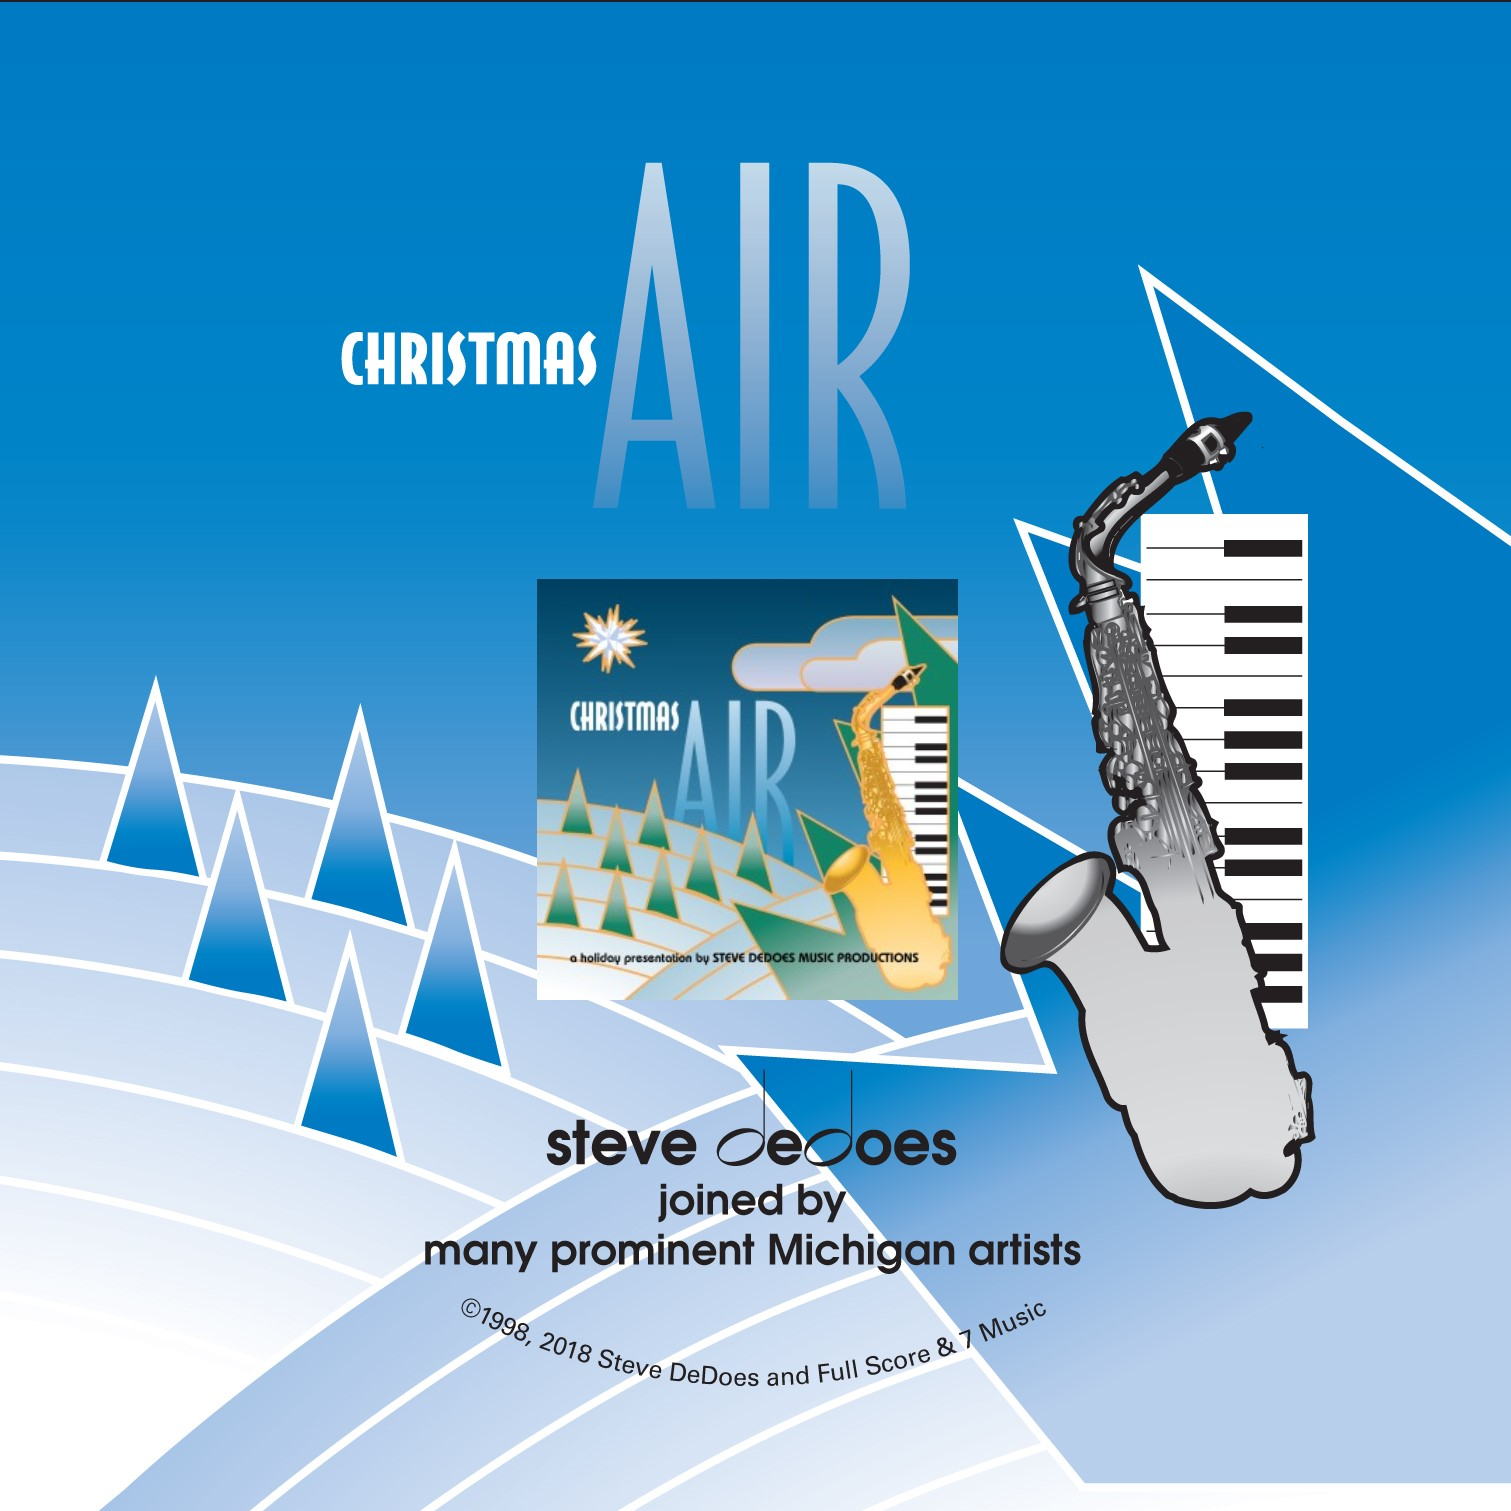 """""""Christmas Air"""" - Steve DeDoes with guest artists"""